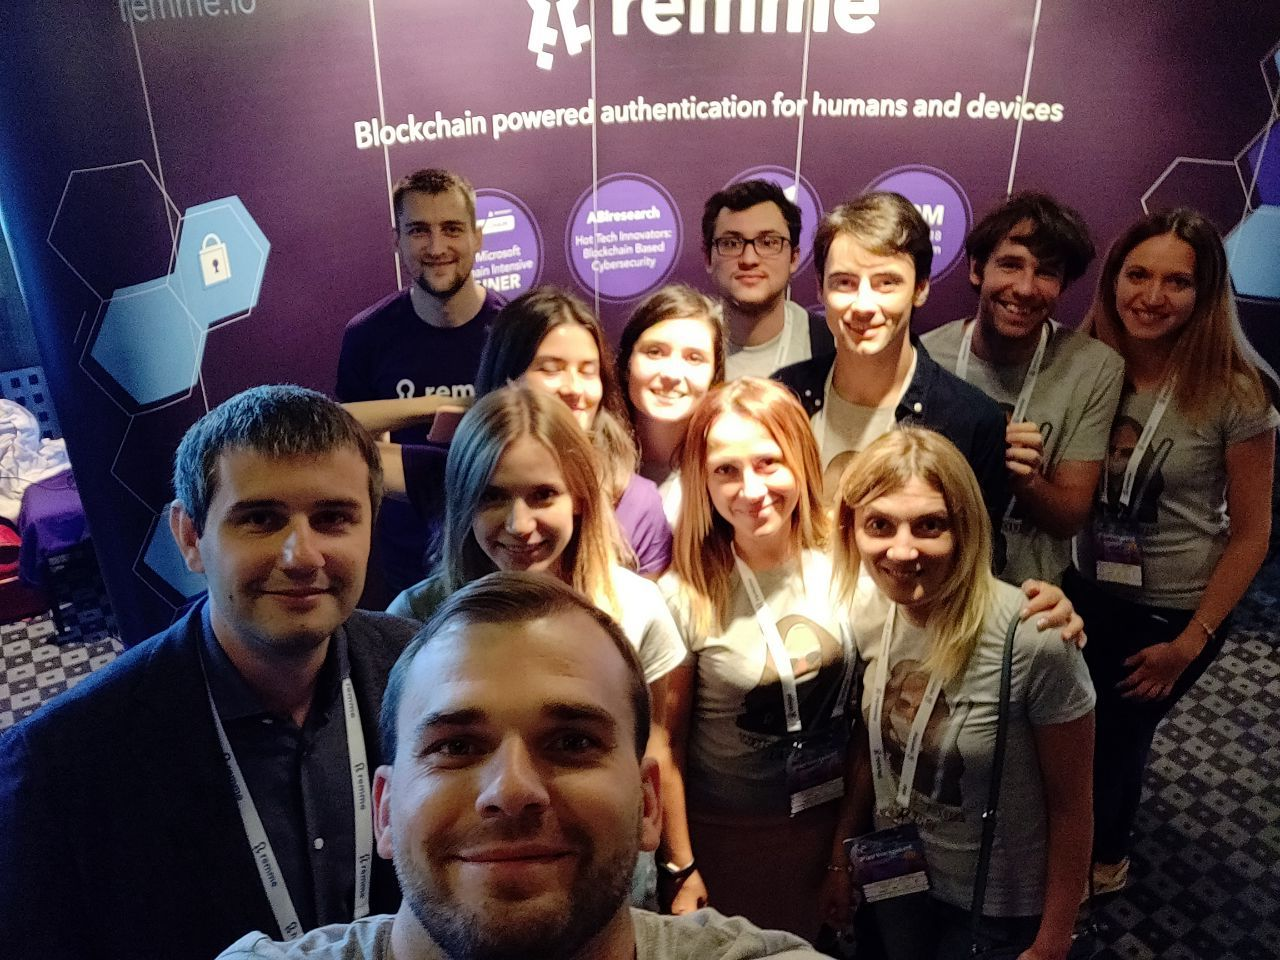 The Remme team in action at a conference.